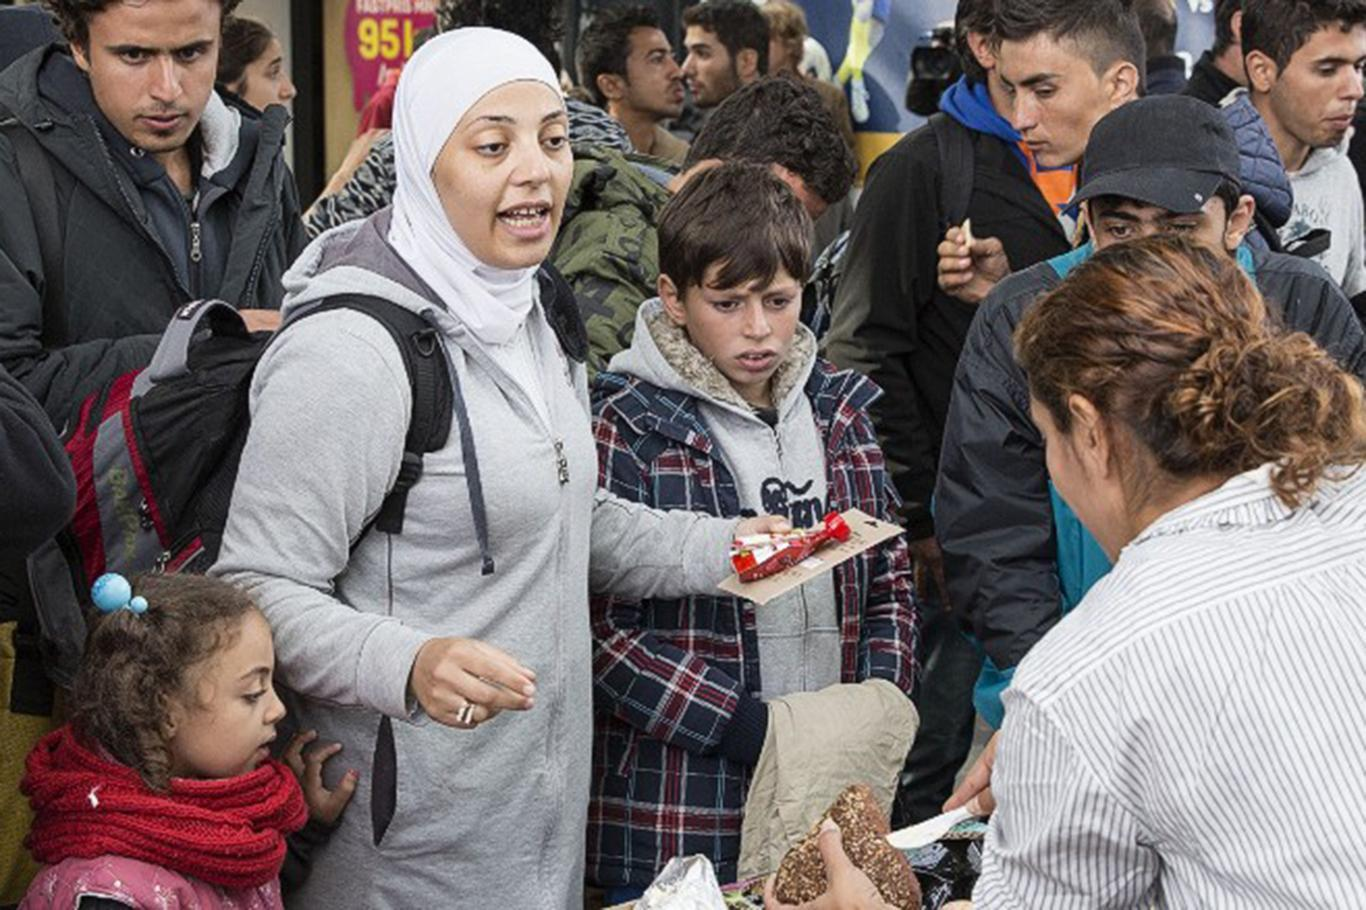 Sweden grants citizenship to more than 27 thousand Syrians in 2019